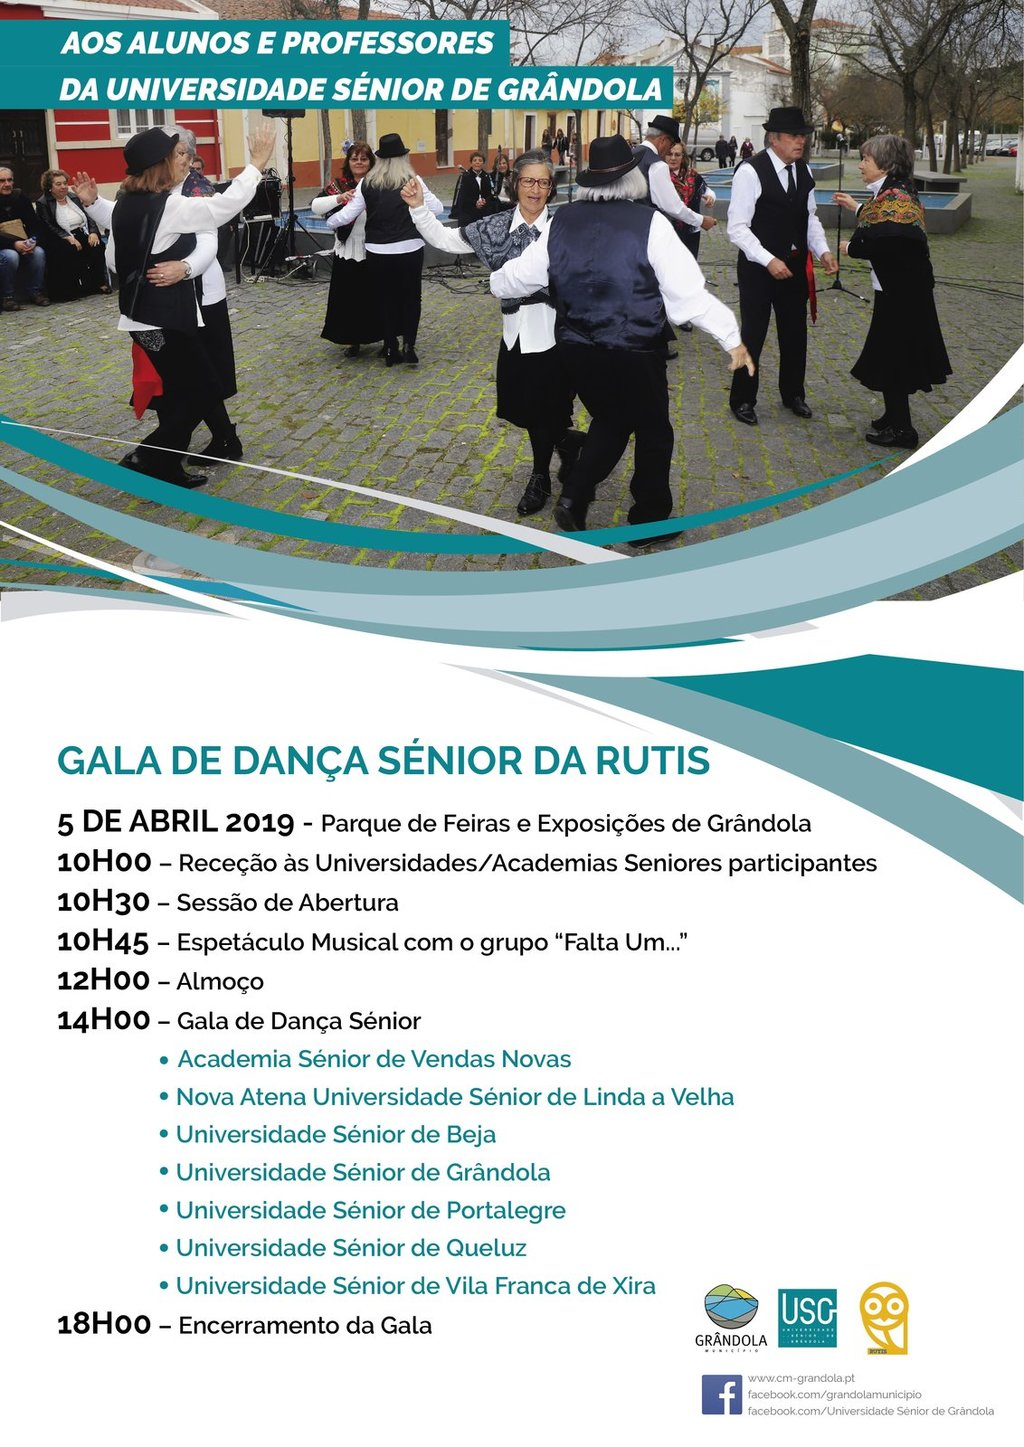 Danca senior prancheta 1 1 1024 2500